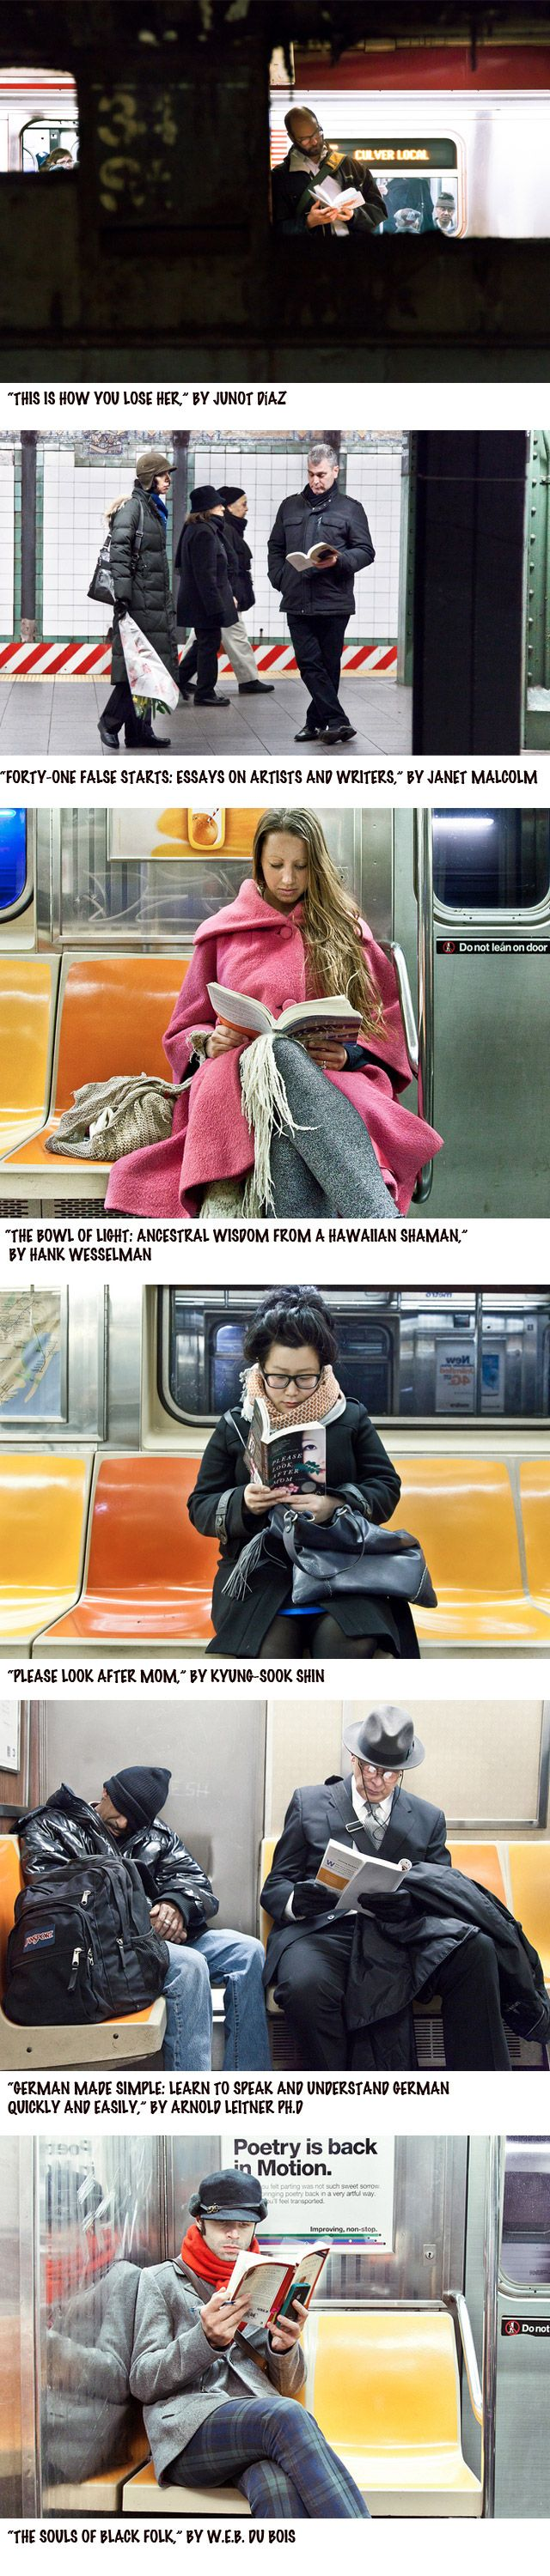 best images about i live in a book world on a train on seacuterie de fotos mostra o que as pessoas estatildeo lendo no metrocirc de ny